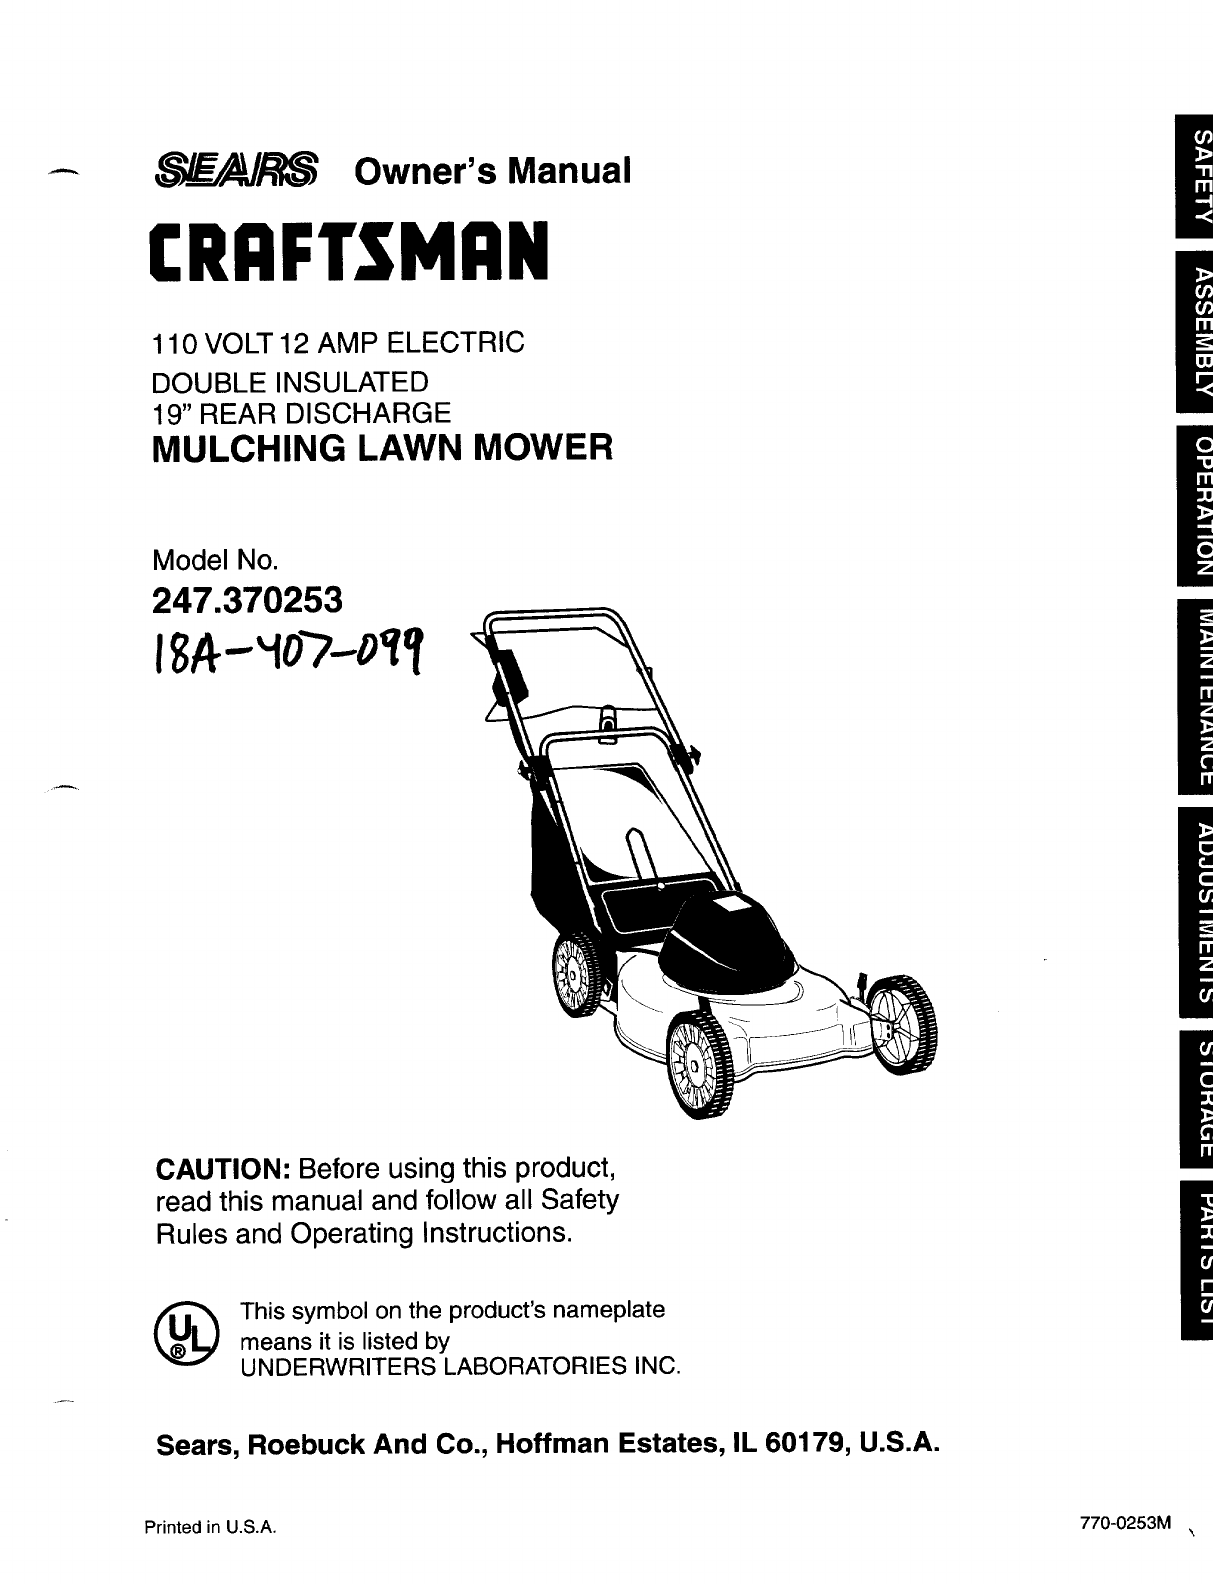 Craftsman Lawn Mower 247.370253 User Guide